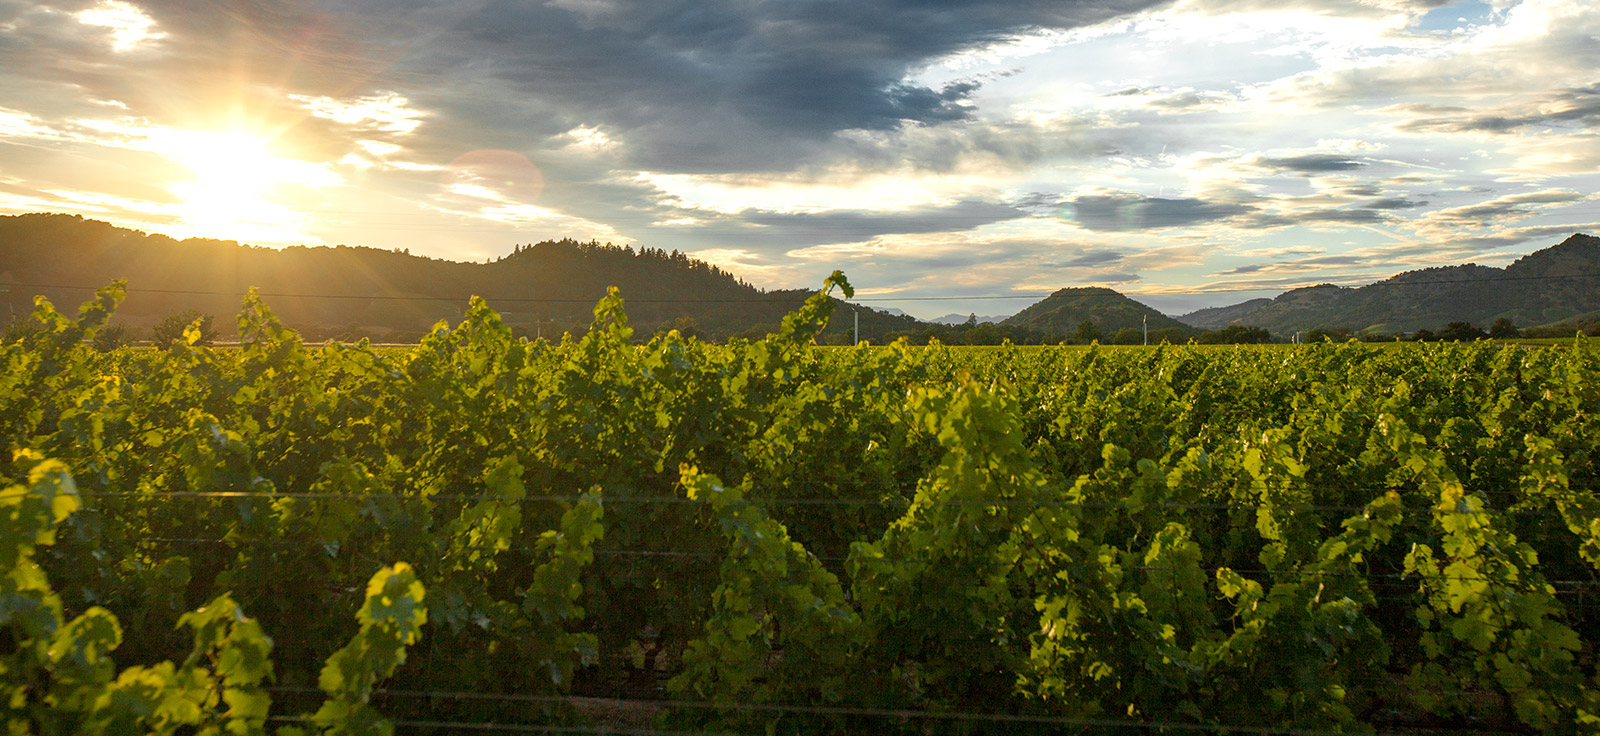 Visiting Napa Valley?